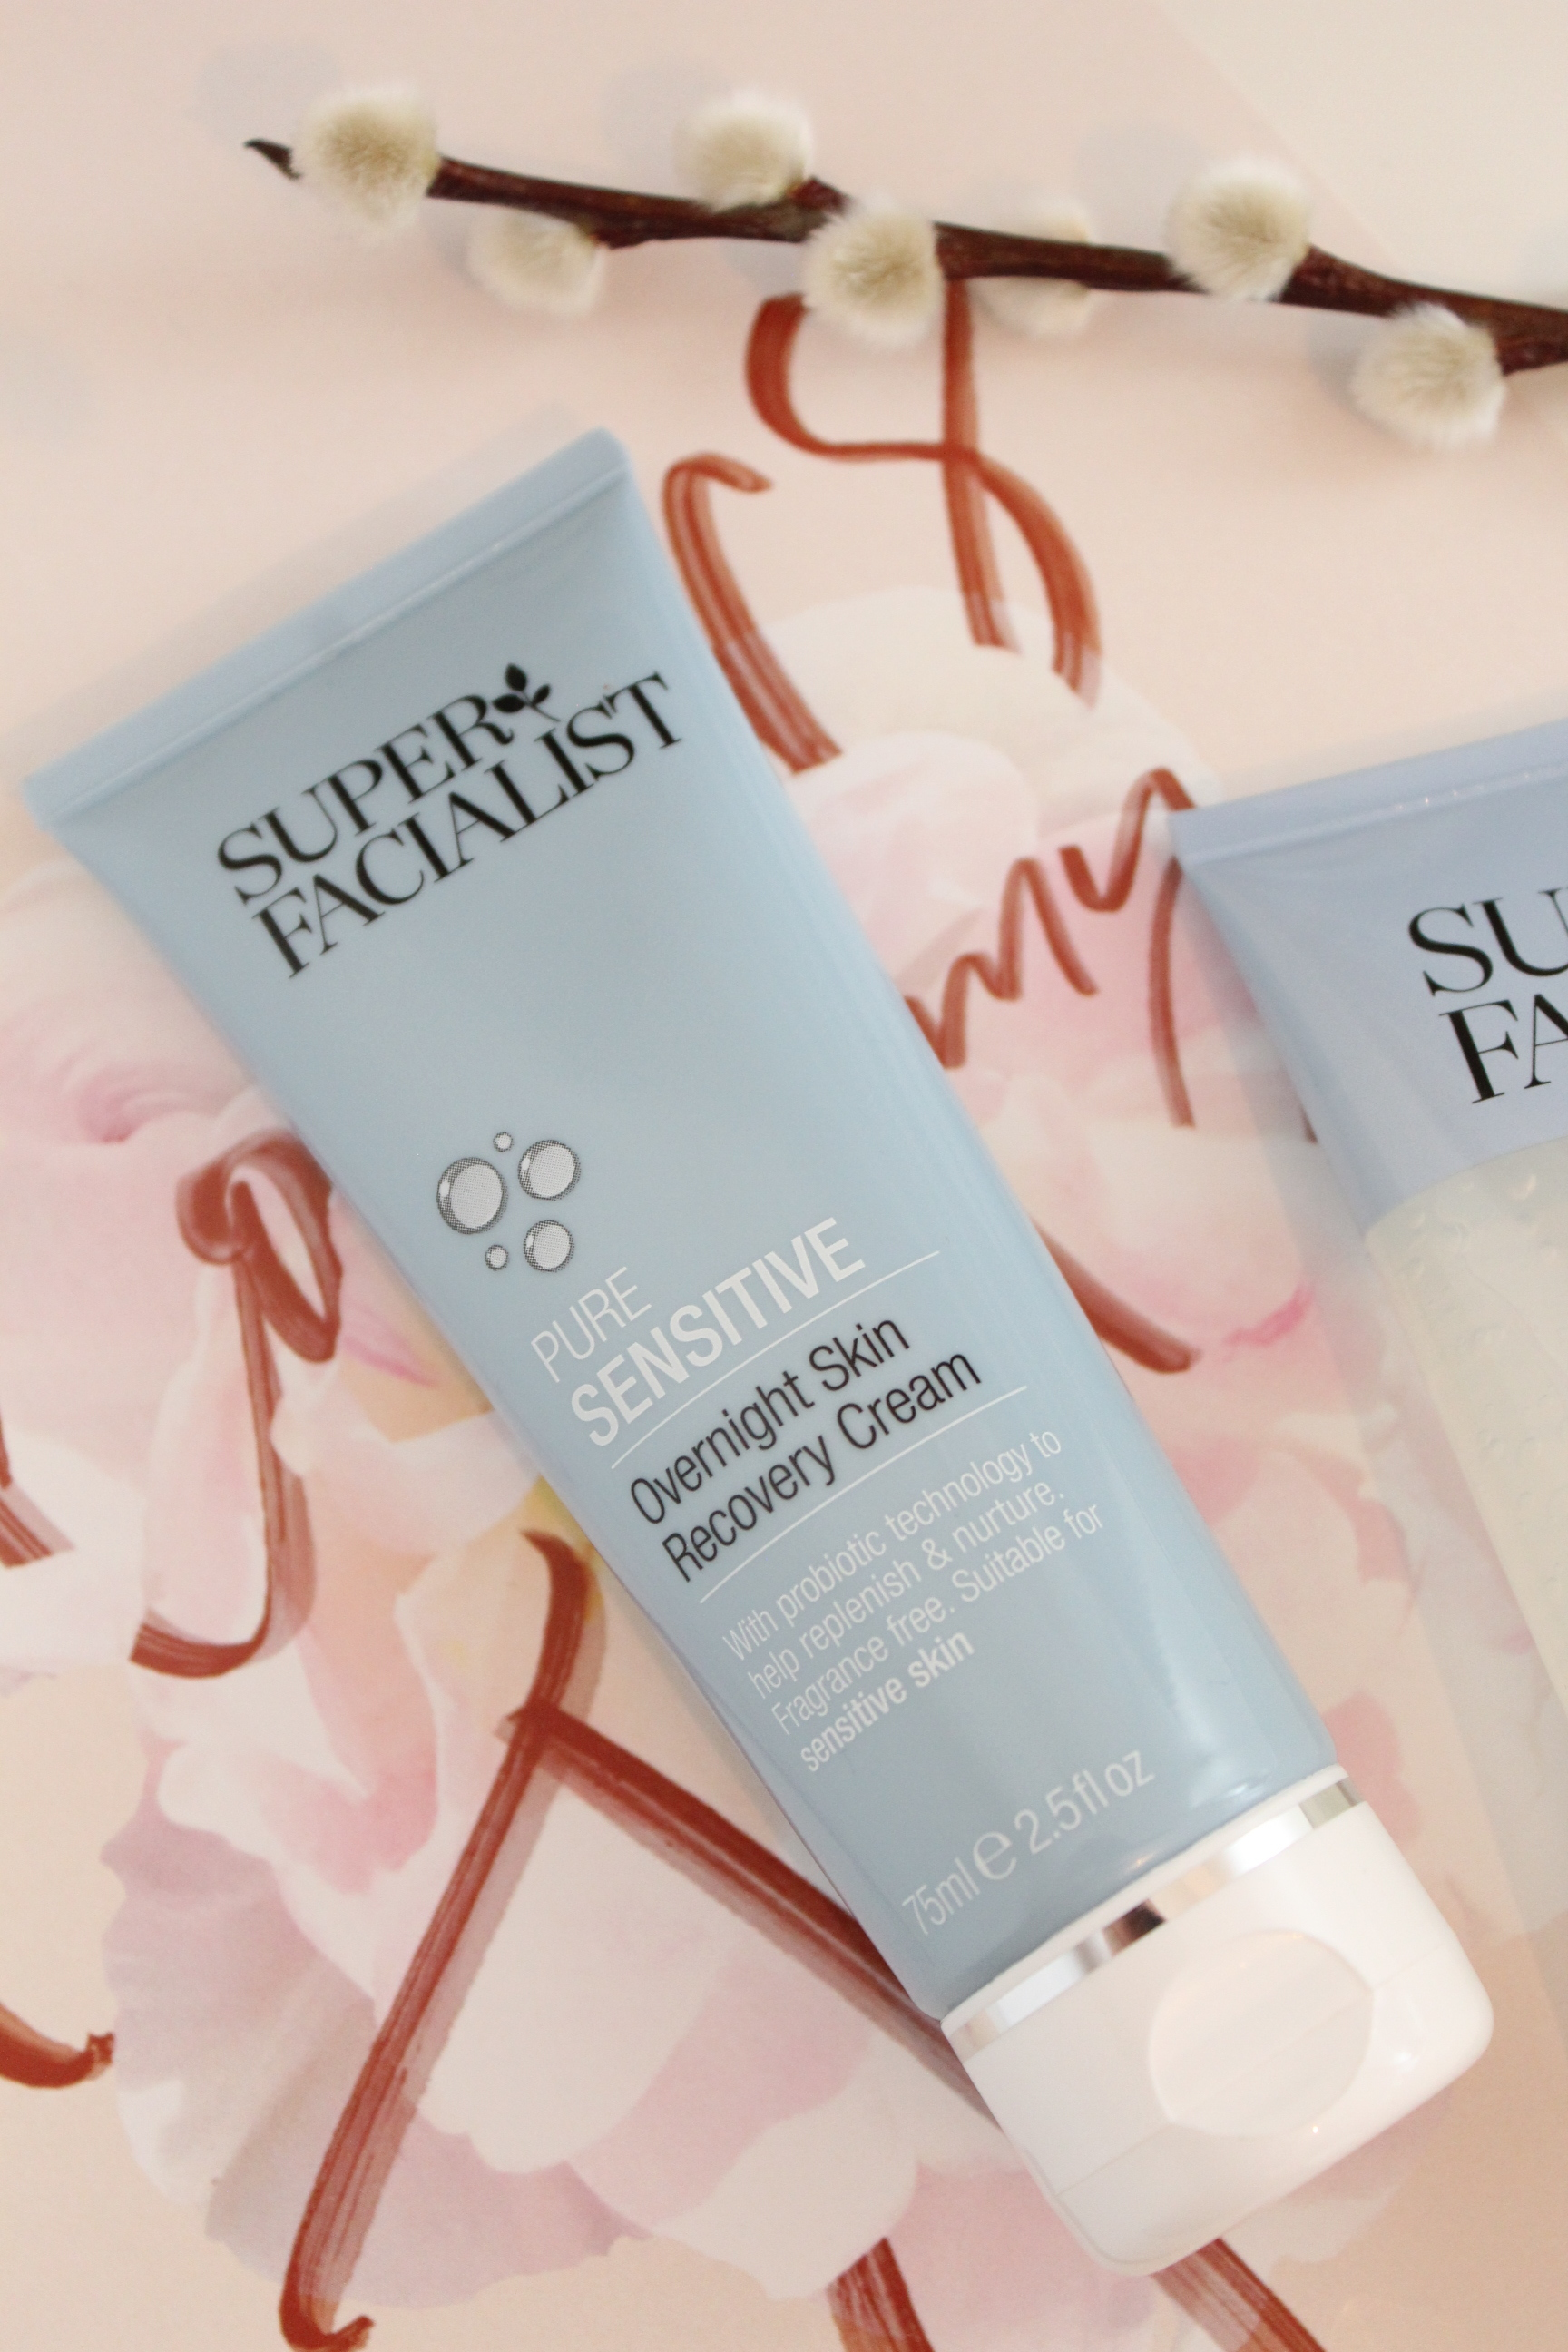 Superfacialist Pure Sensitive Overnight Skin Recovery Cream, Wondering English Rose Blog